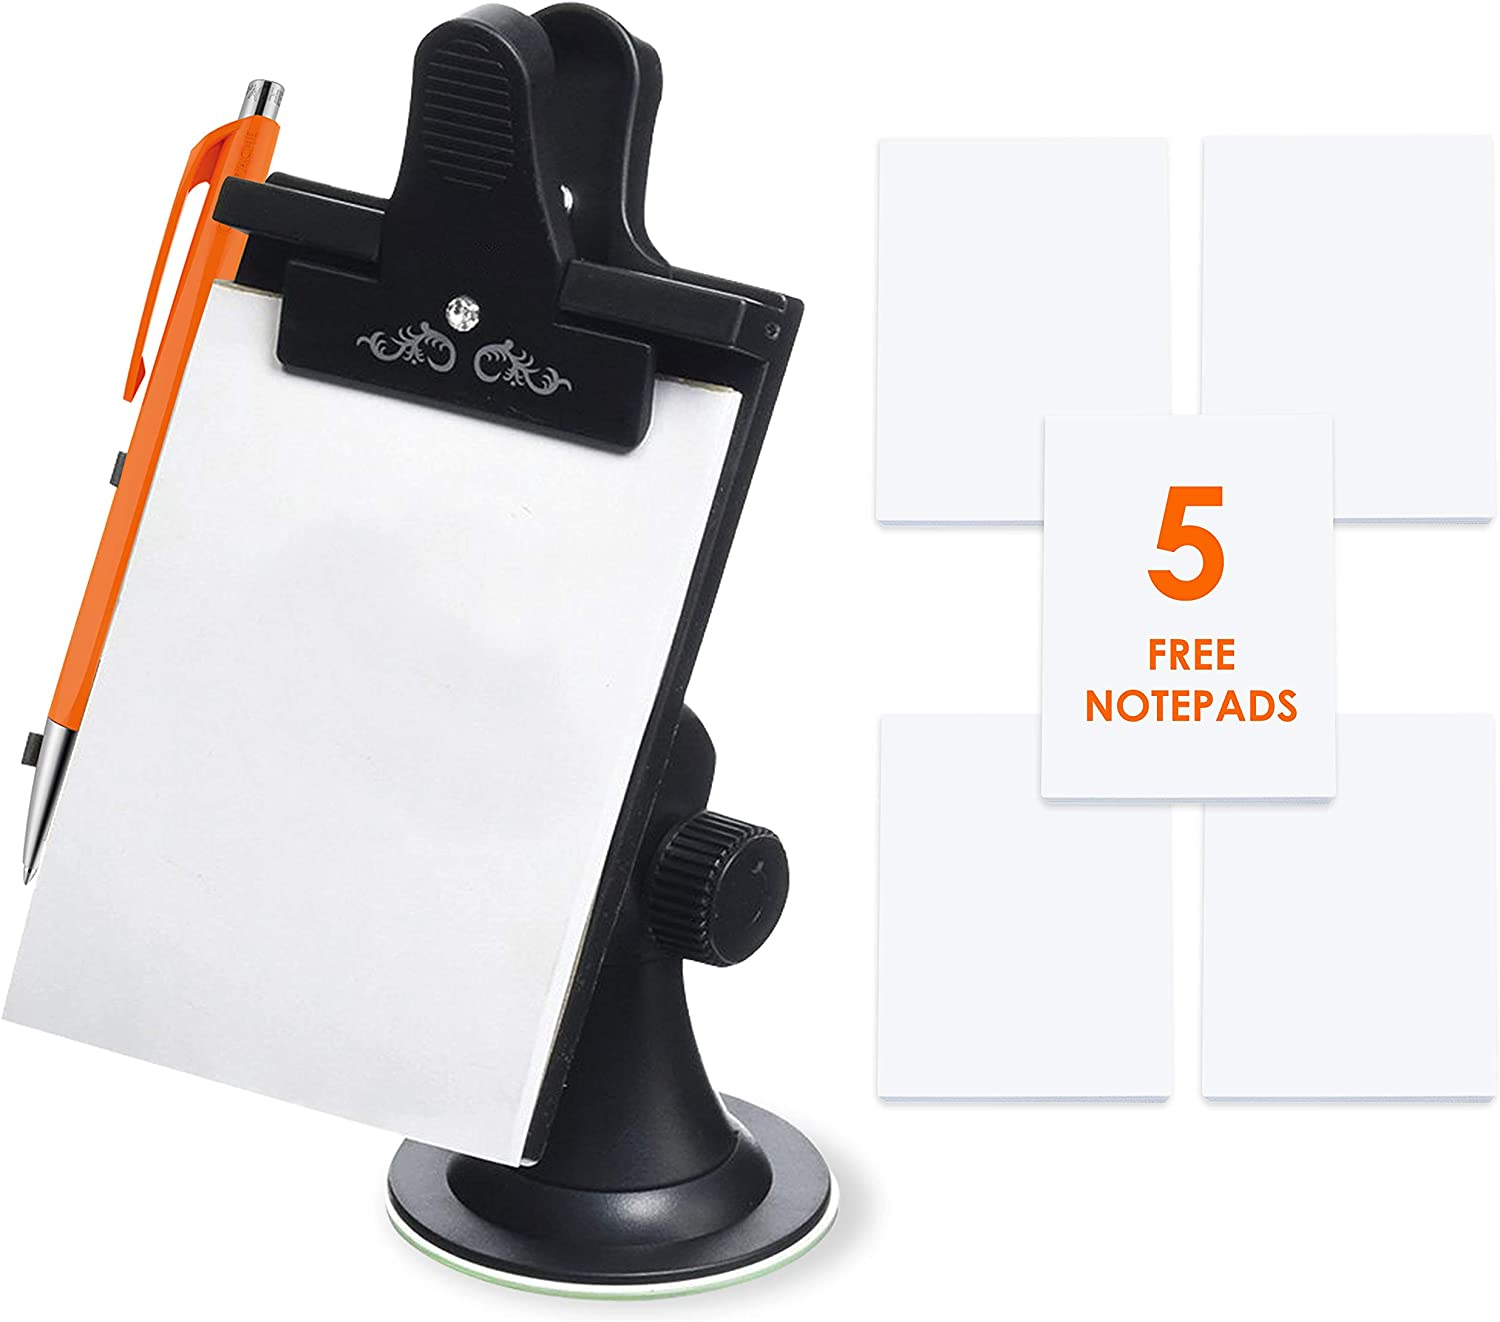 Car Note Pad/Memo Pad/Clip Board with Pen Holder   Universal Suction, Flexible Neck Mount   Allows You to Take Notes While On-The-Go   Now Comes with 5 Replacement Pads of 30 Pages by Mobi Lock